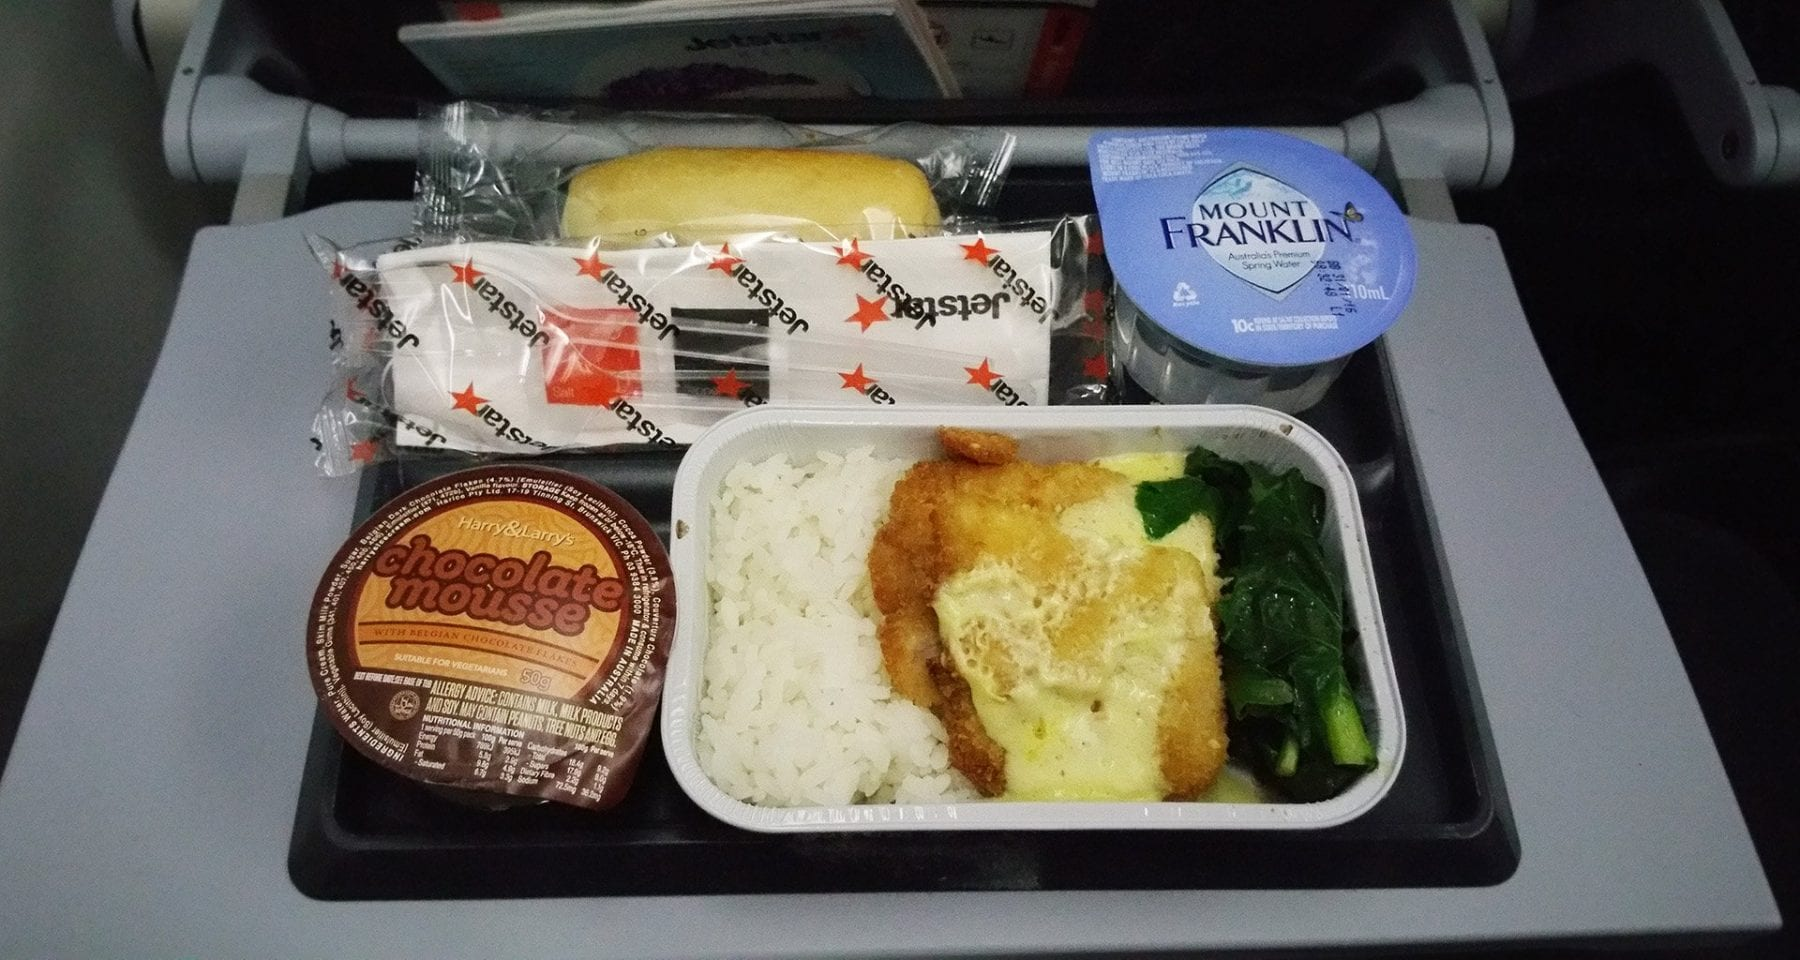 Jetstar economy class pre order meal